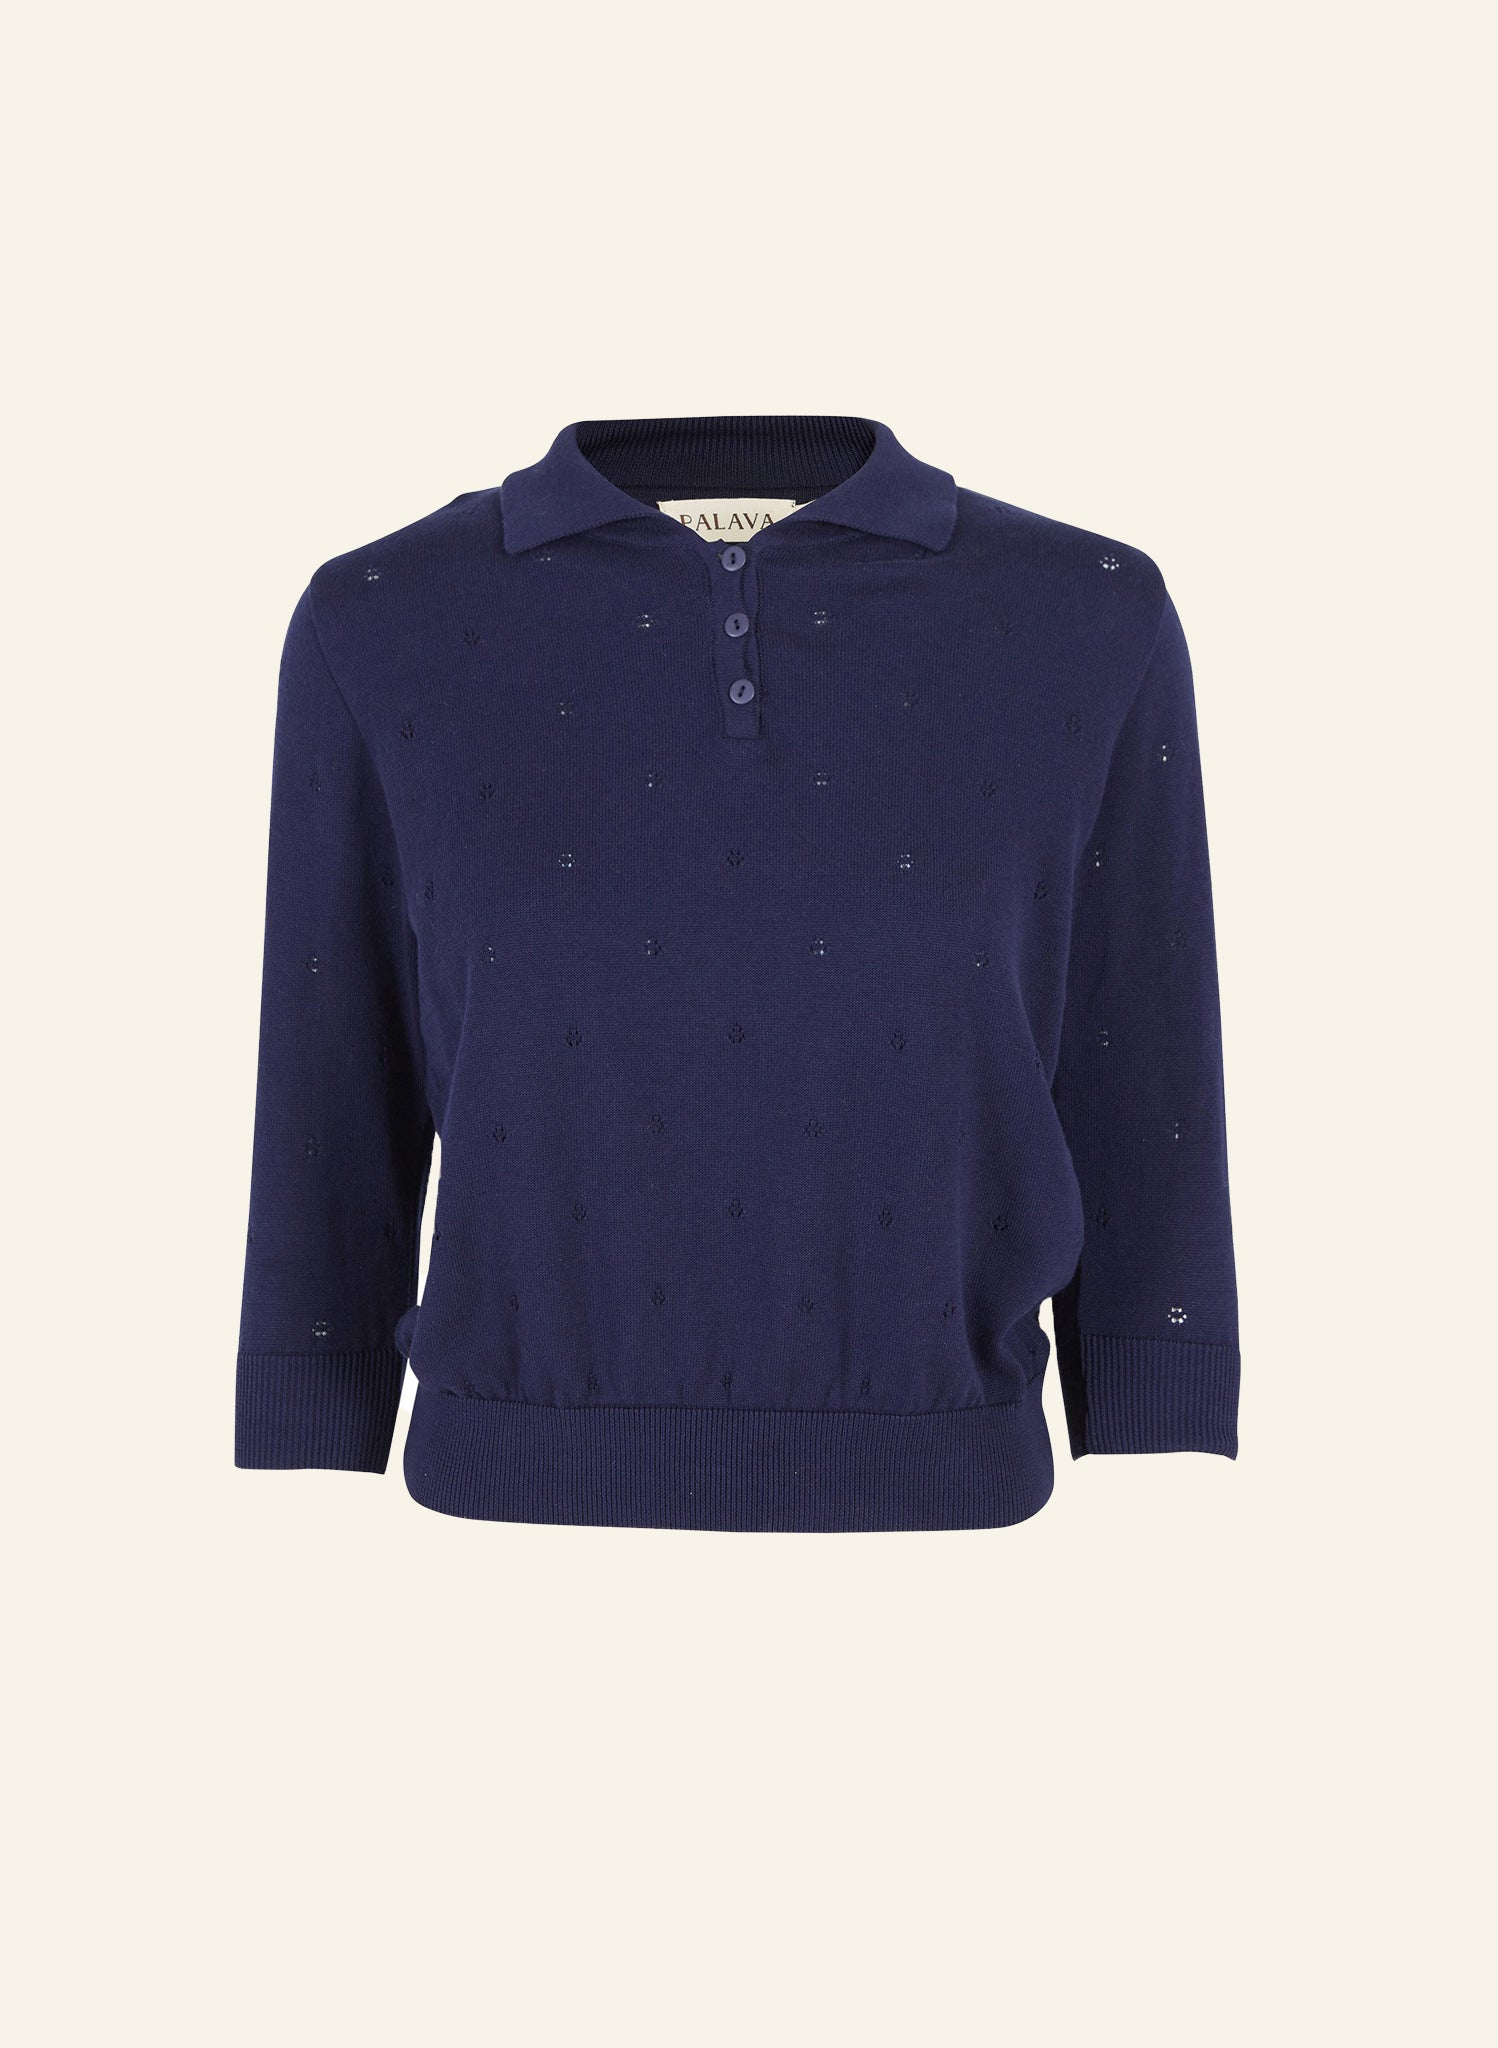 Organic Cotton Knitted Top - Navy